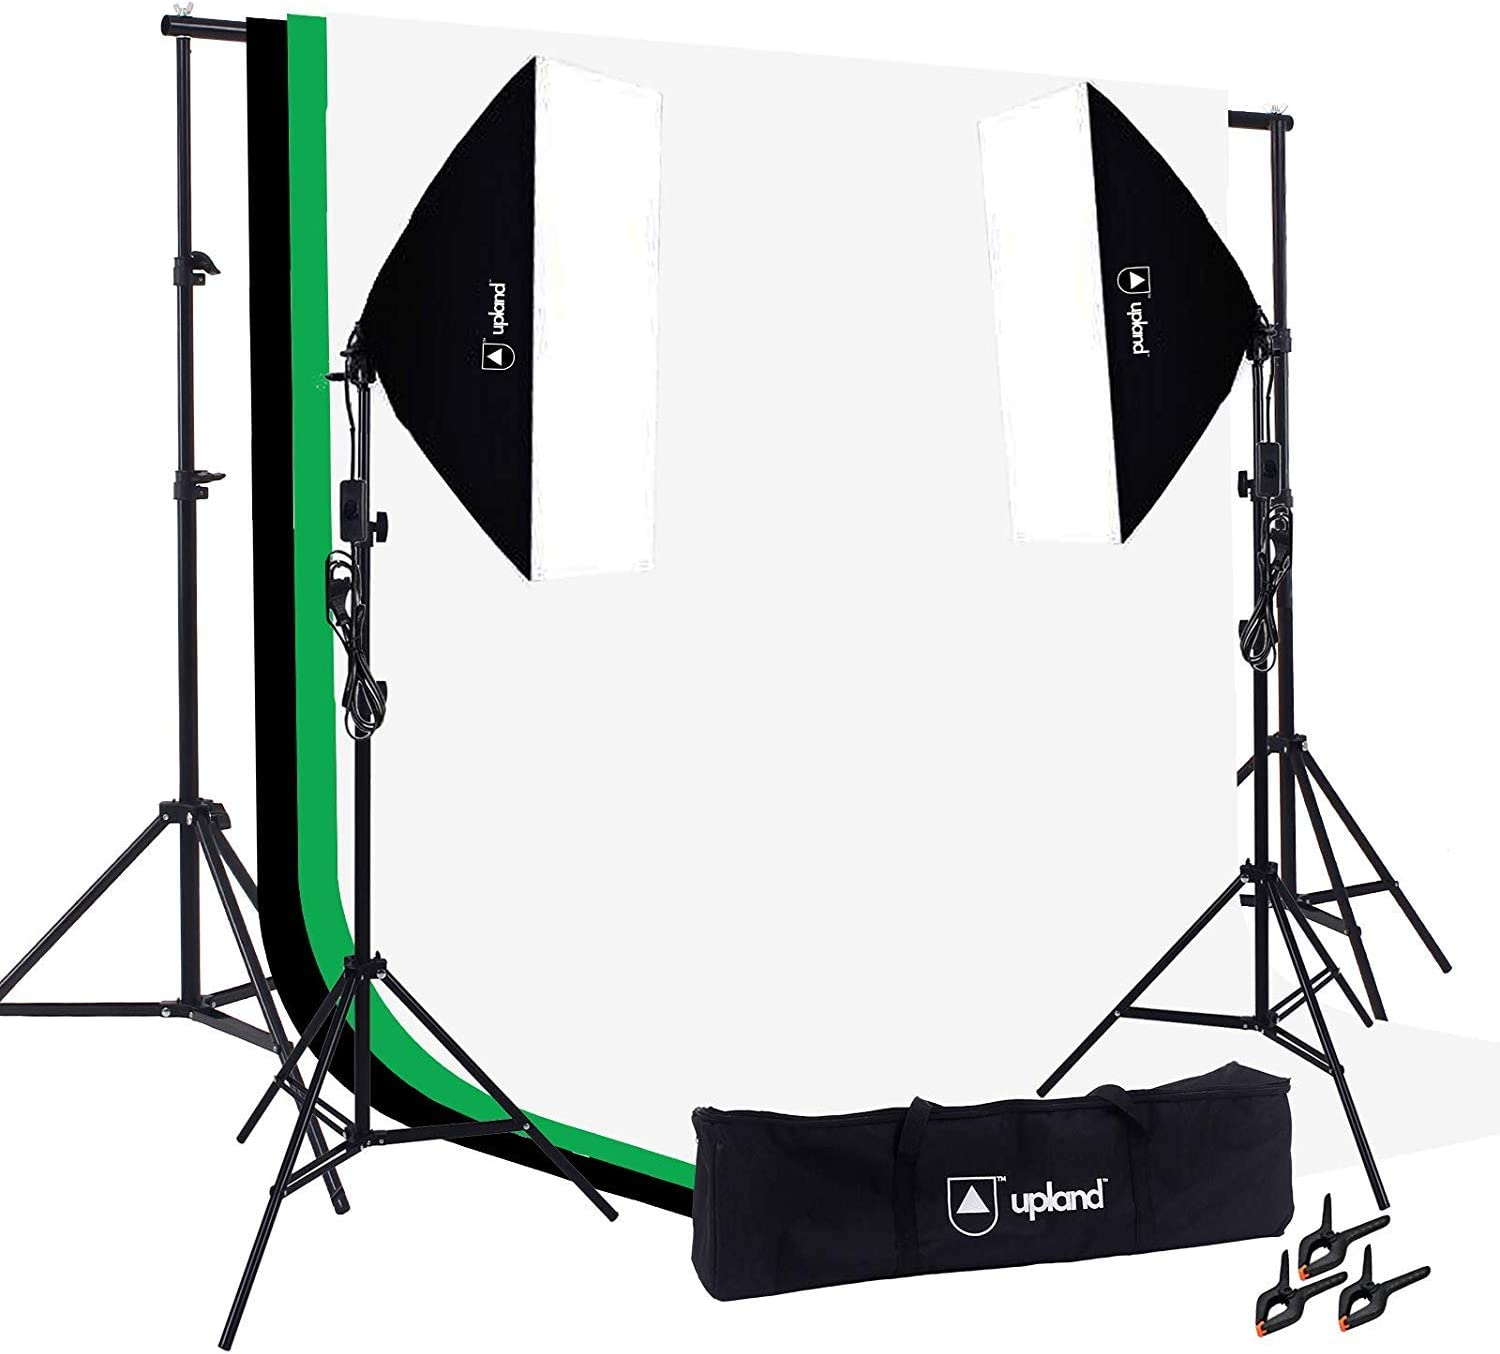 + 3 Backdrops Upland Softbox Lighting Kit for Photo 2 Softbox 20x28 Photography and Video Studio 6x9.2FT 6.6x10FT + Backdrop Support Stand